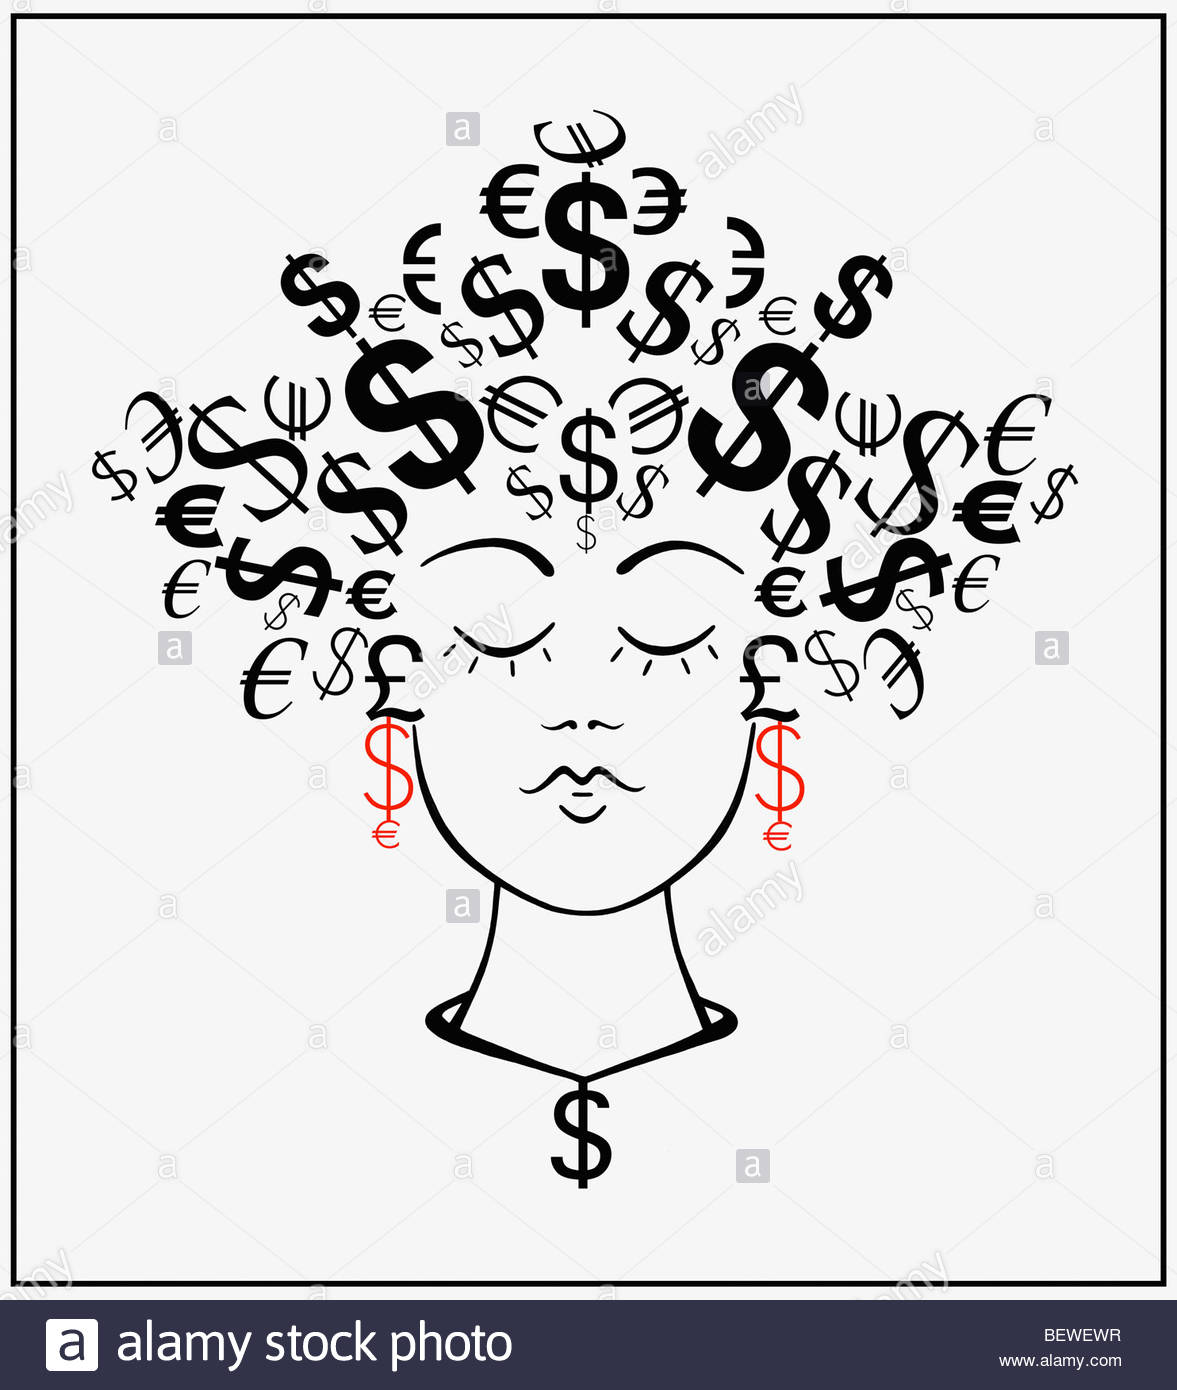 Woman with currency symbols for hair - Stock Image